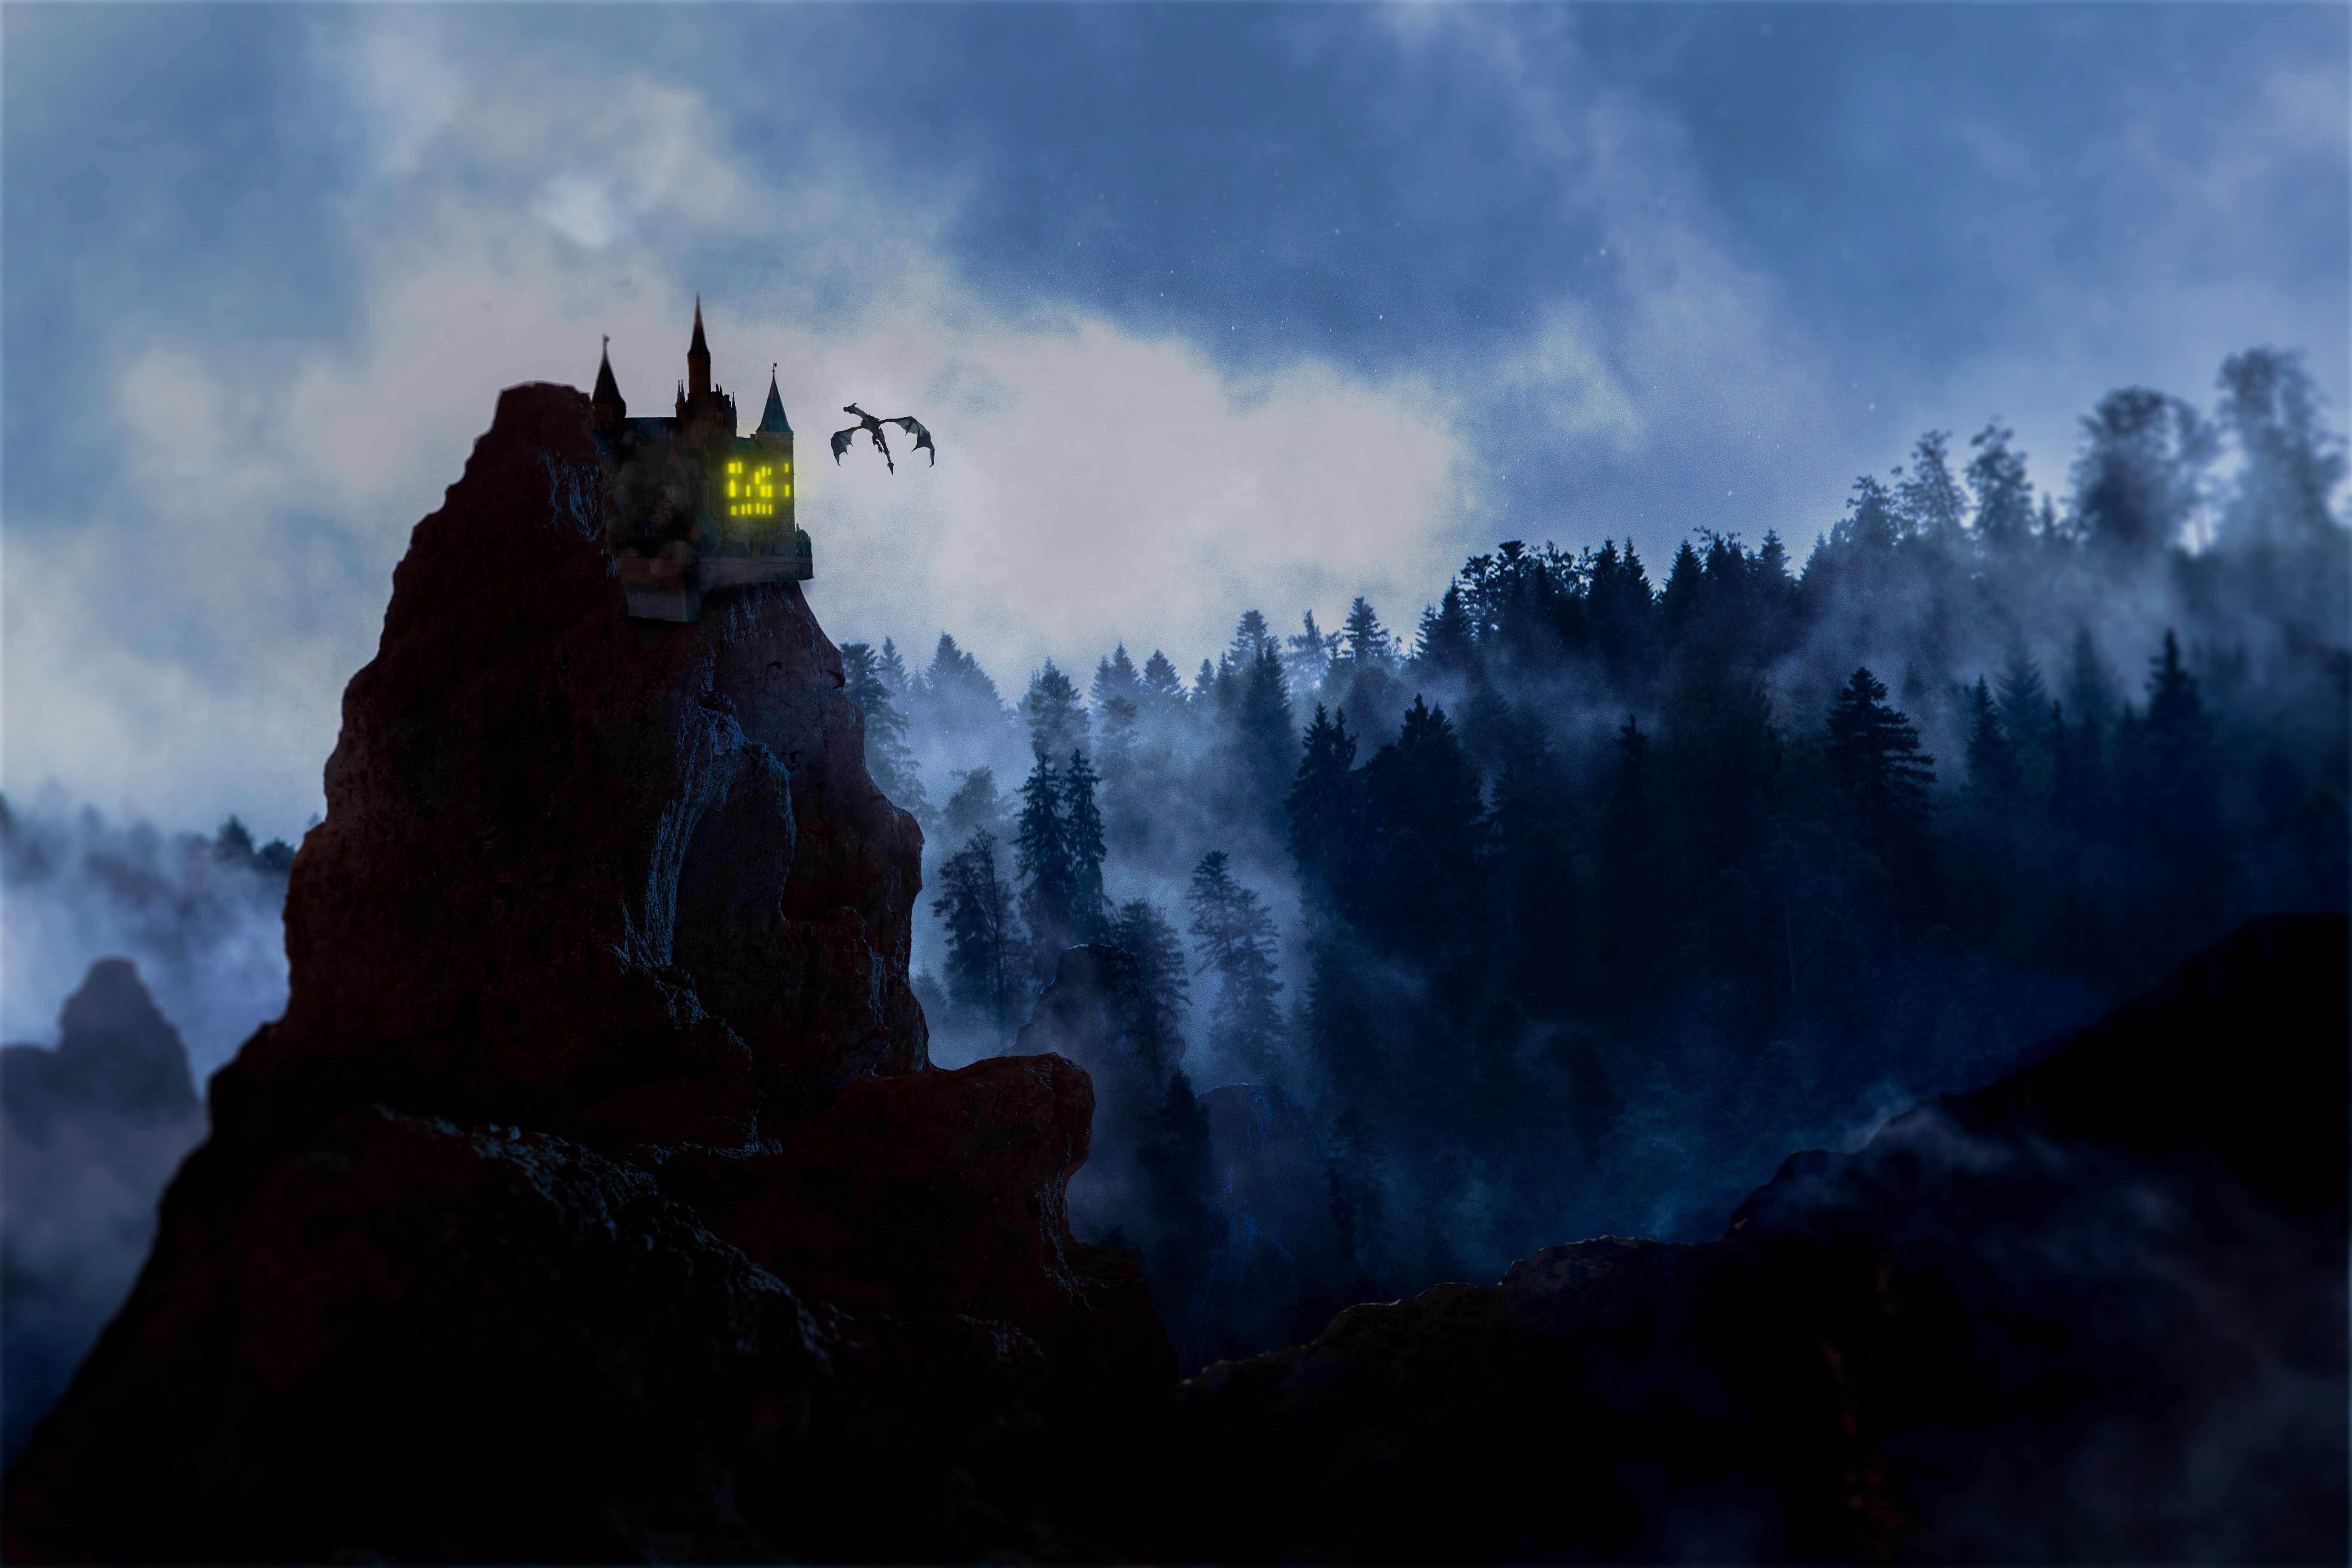 93321 download wallpaper Fantasy, Rock, Lock, Dragon, Fog, Forest screensavers and pictures for free